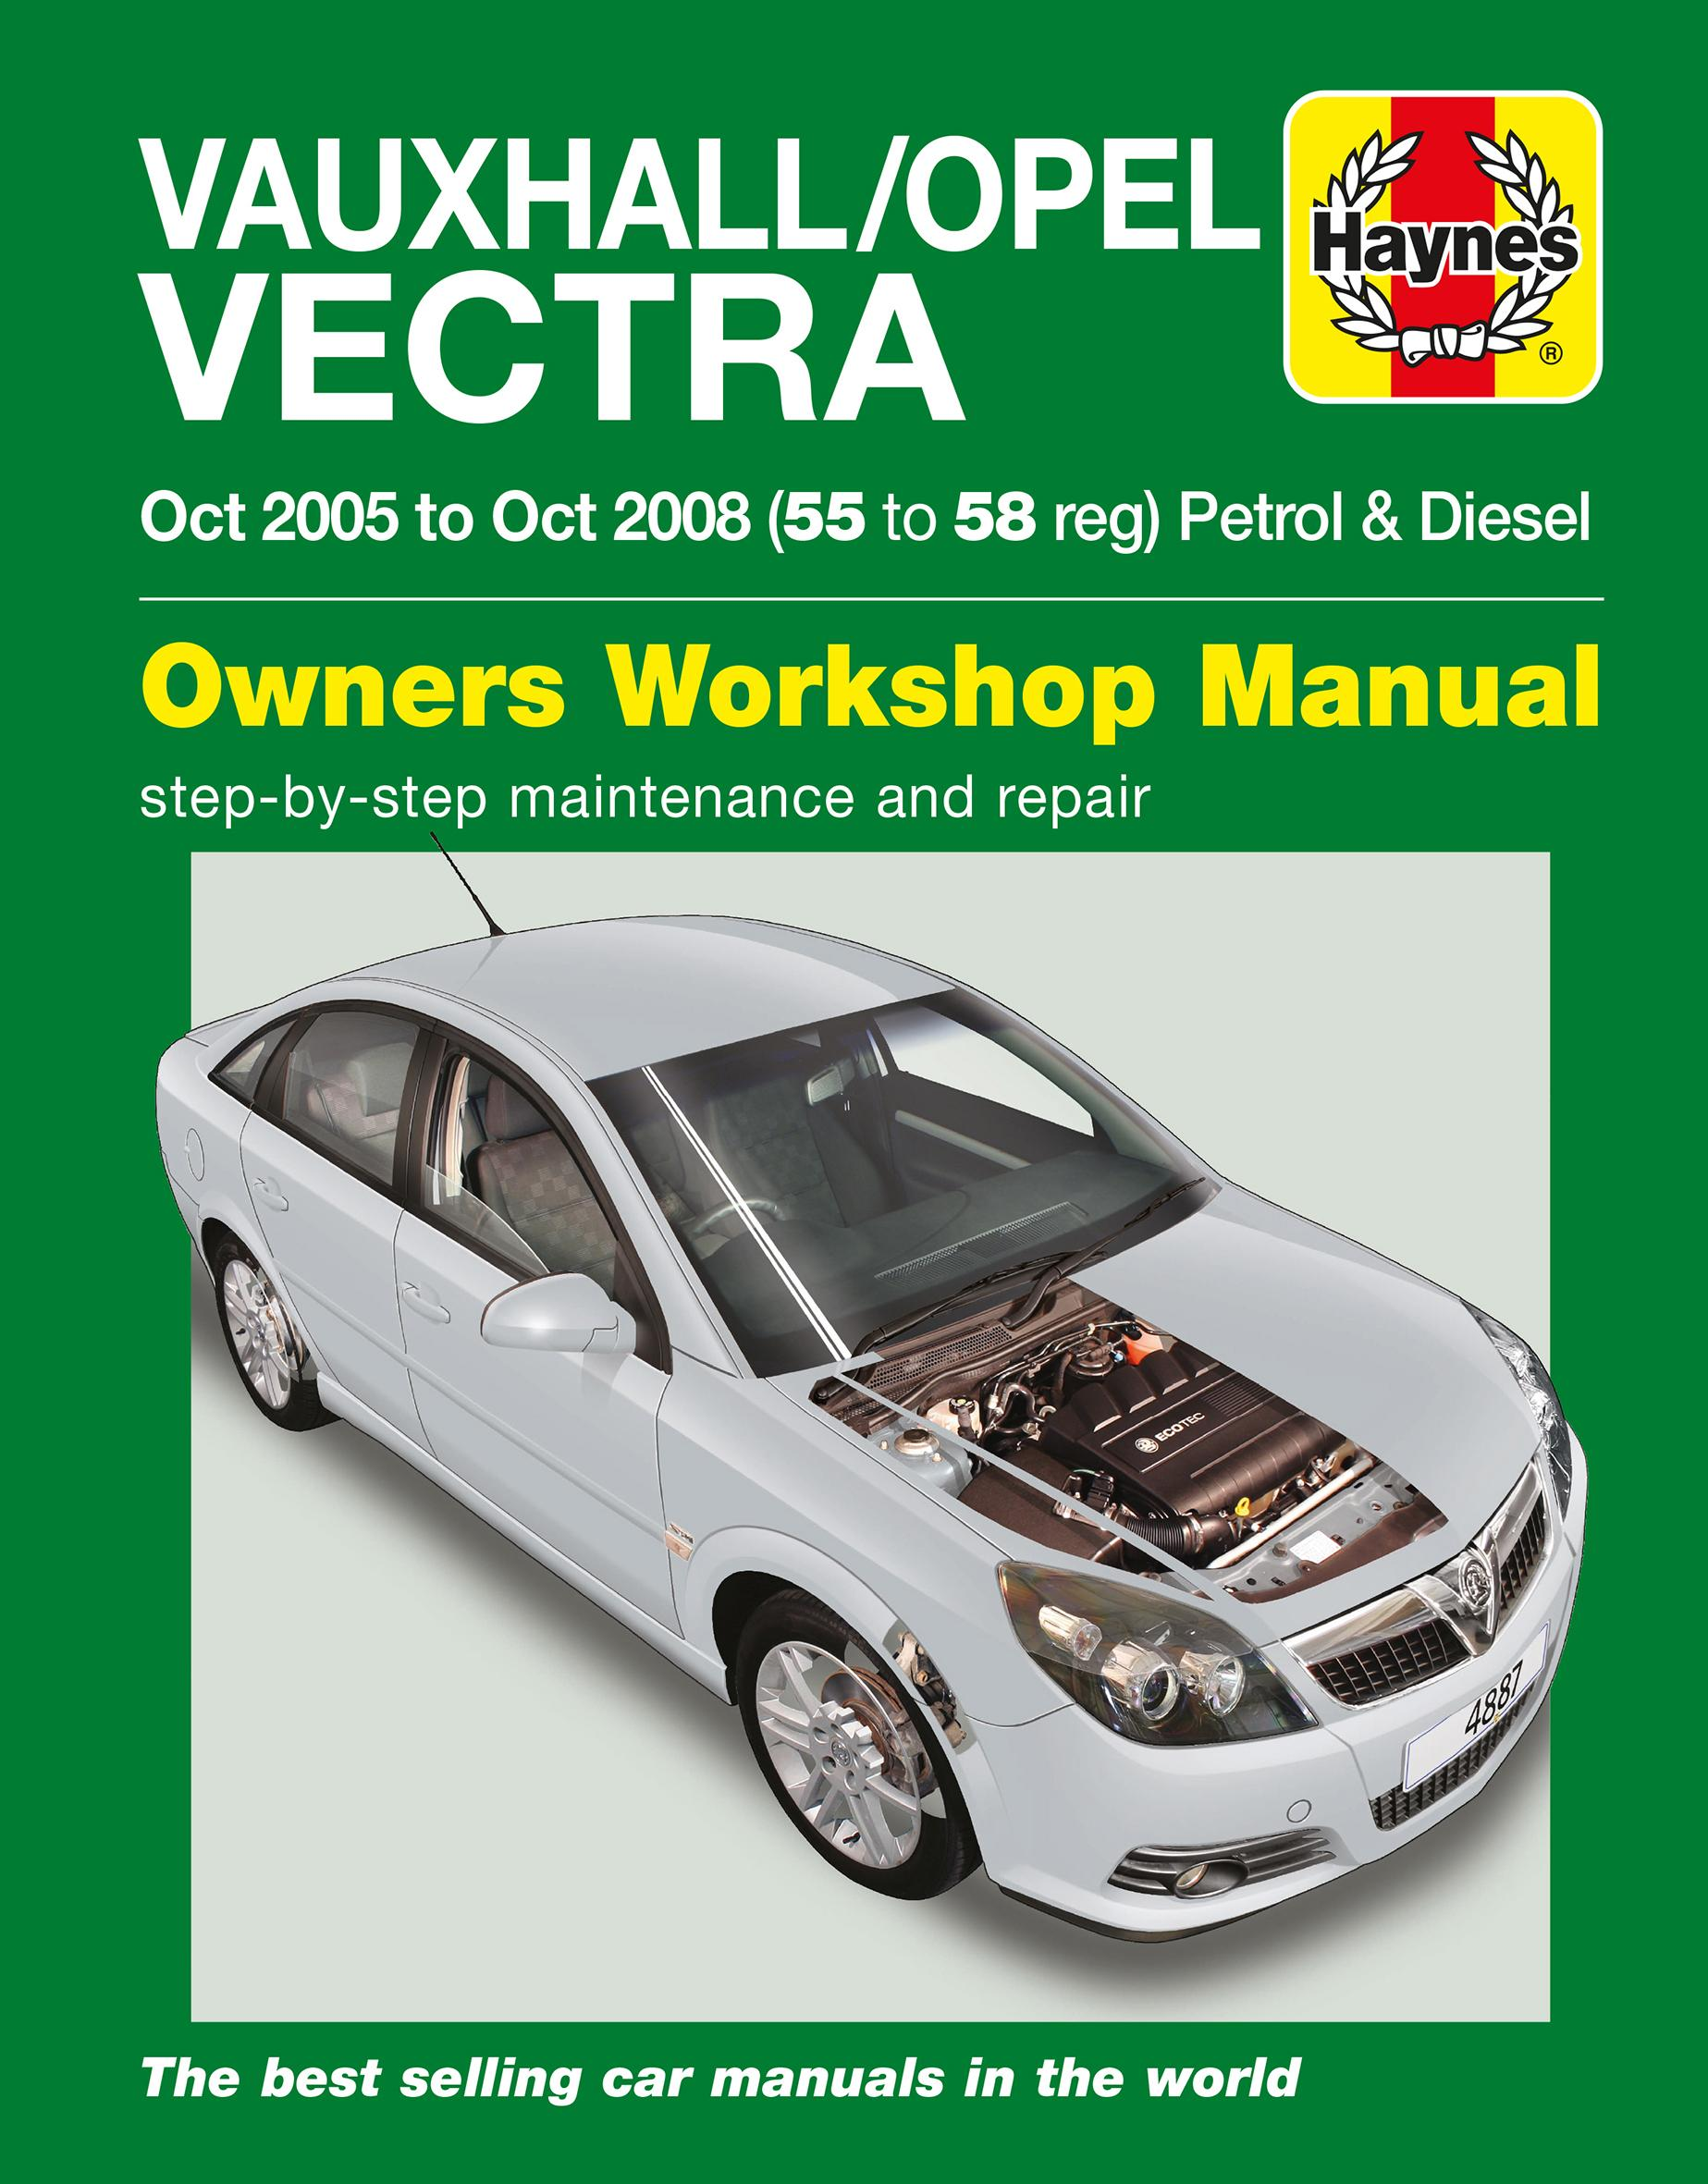 vectra b service manual user guide manual that easy to read u2022 rh sibere co